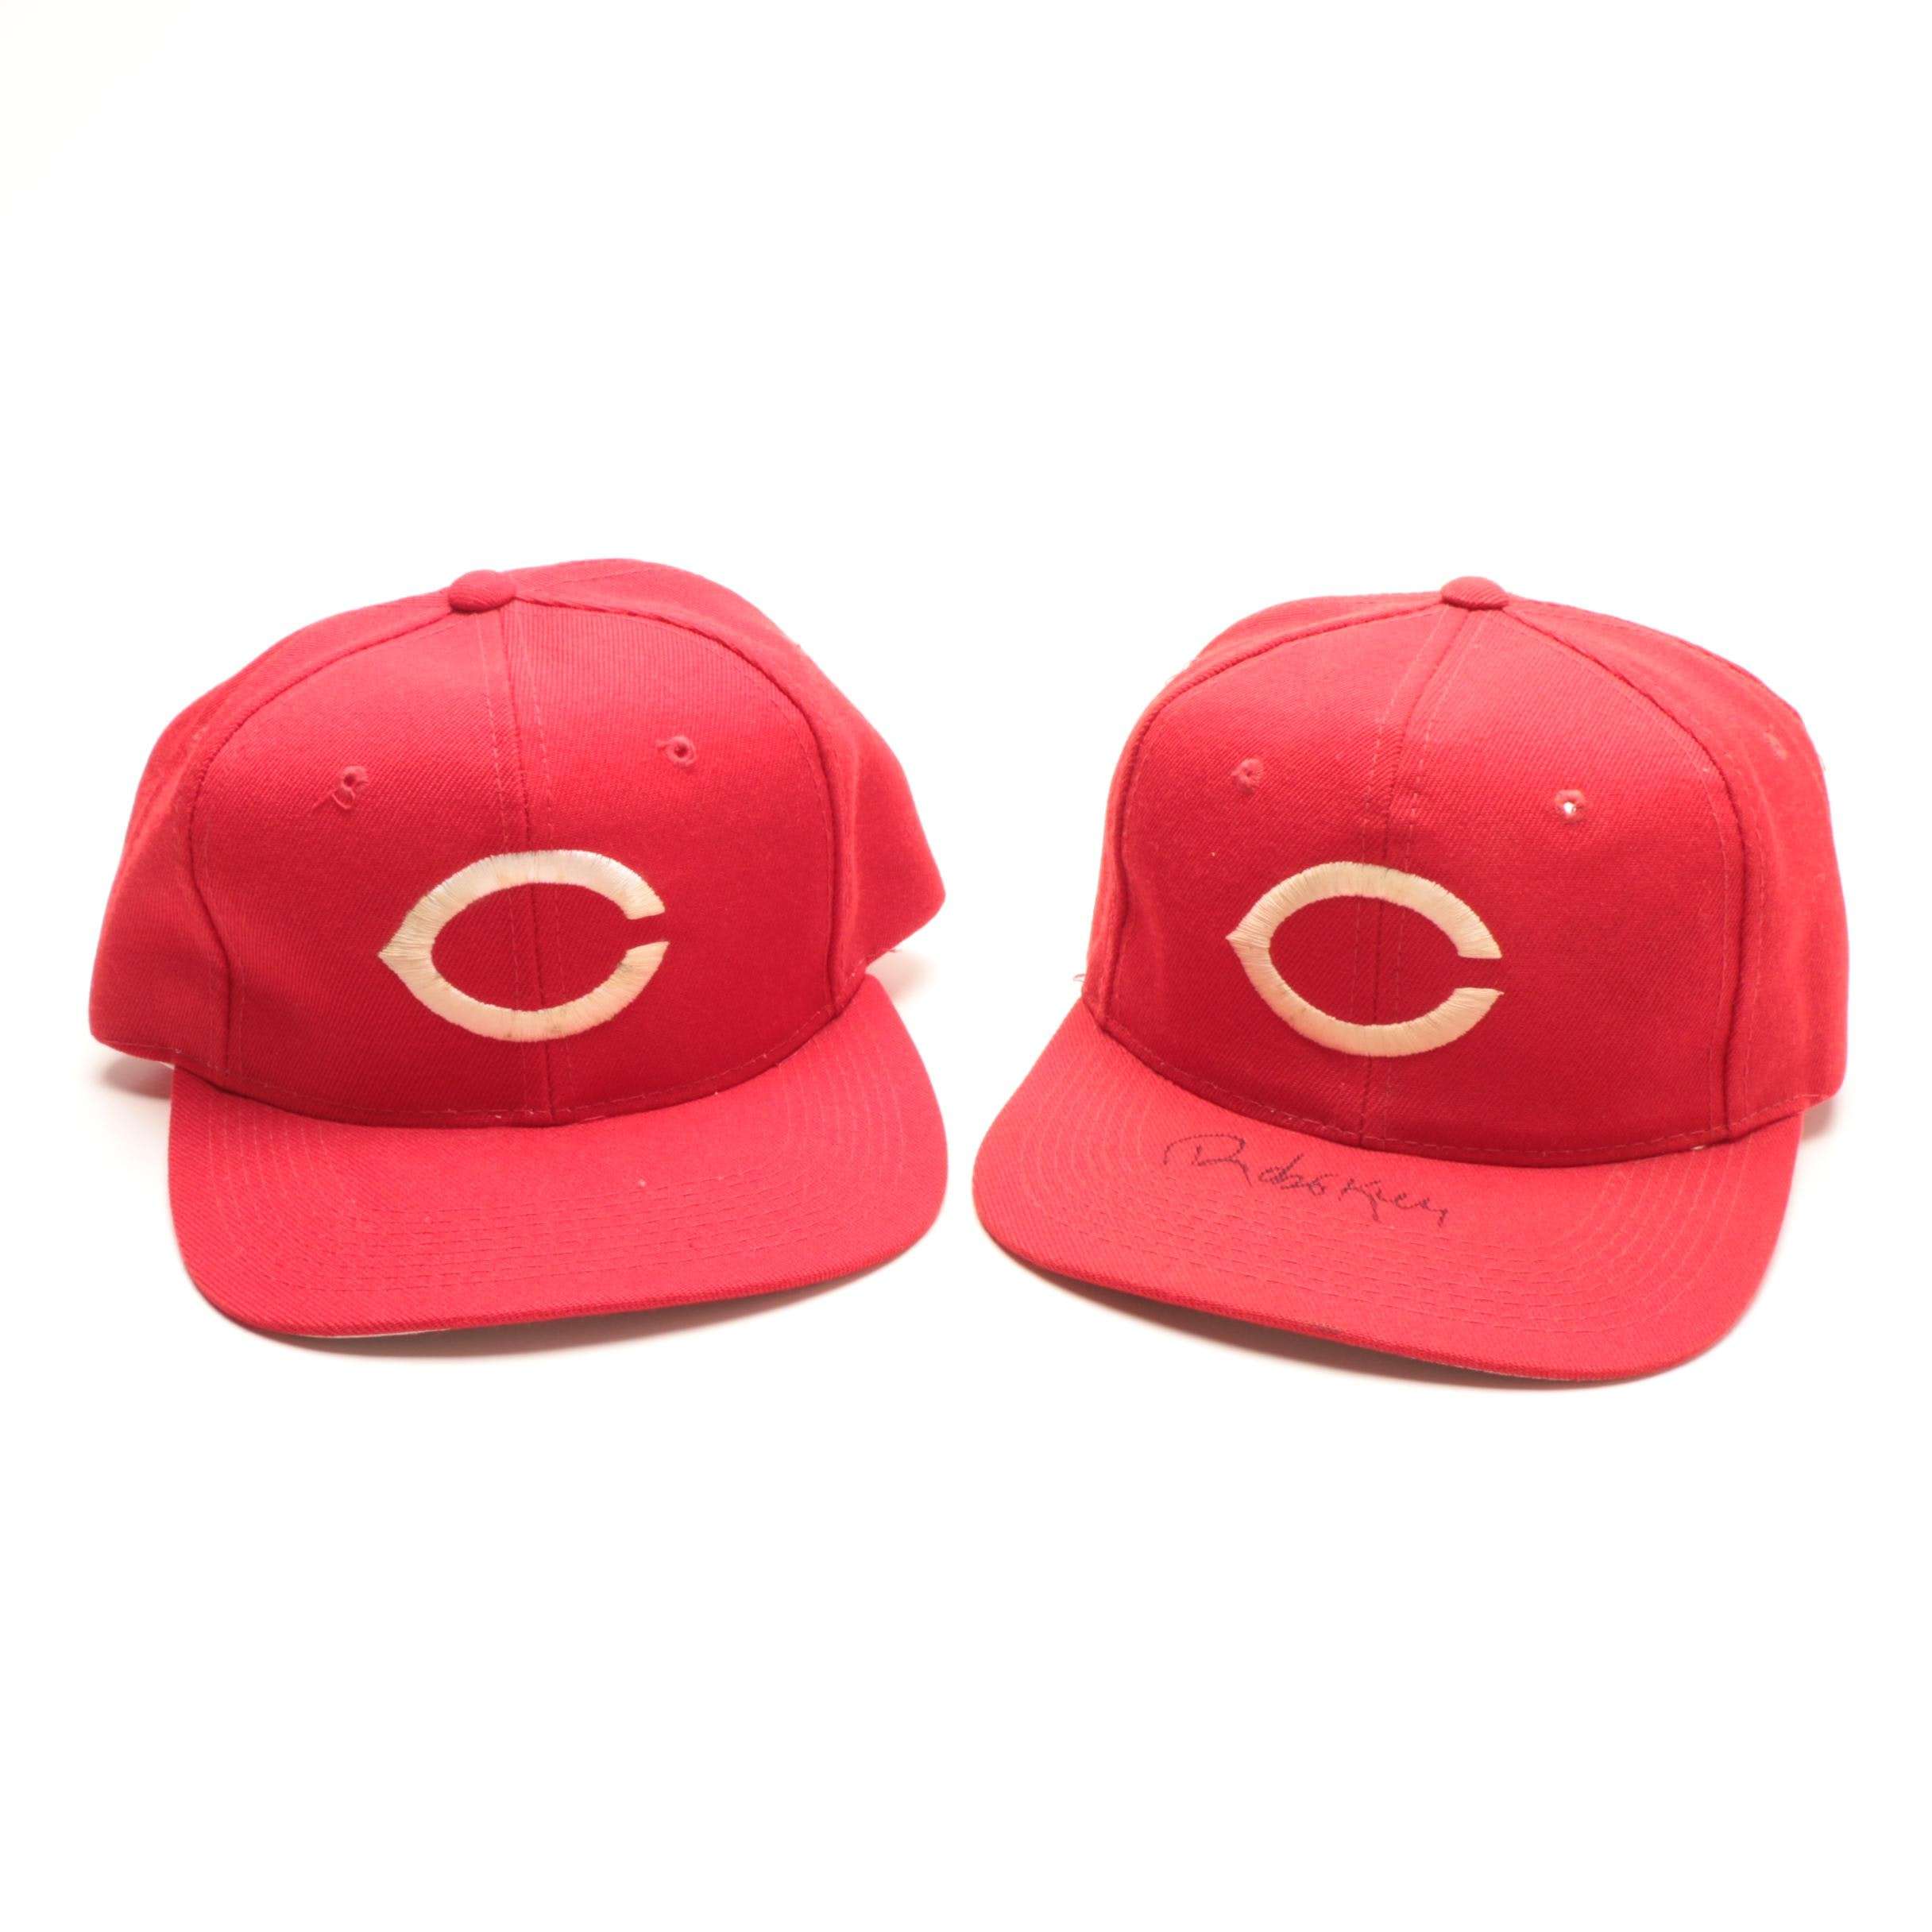 Two Signed 1990s Era Reds Spring Training Hats